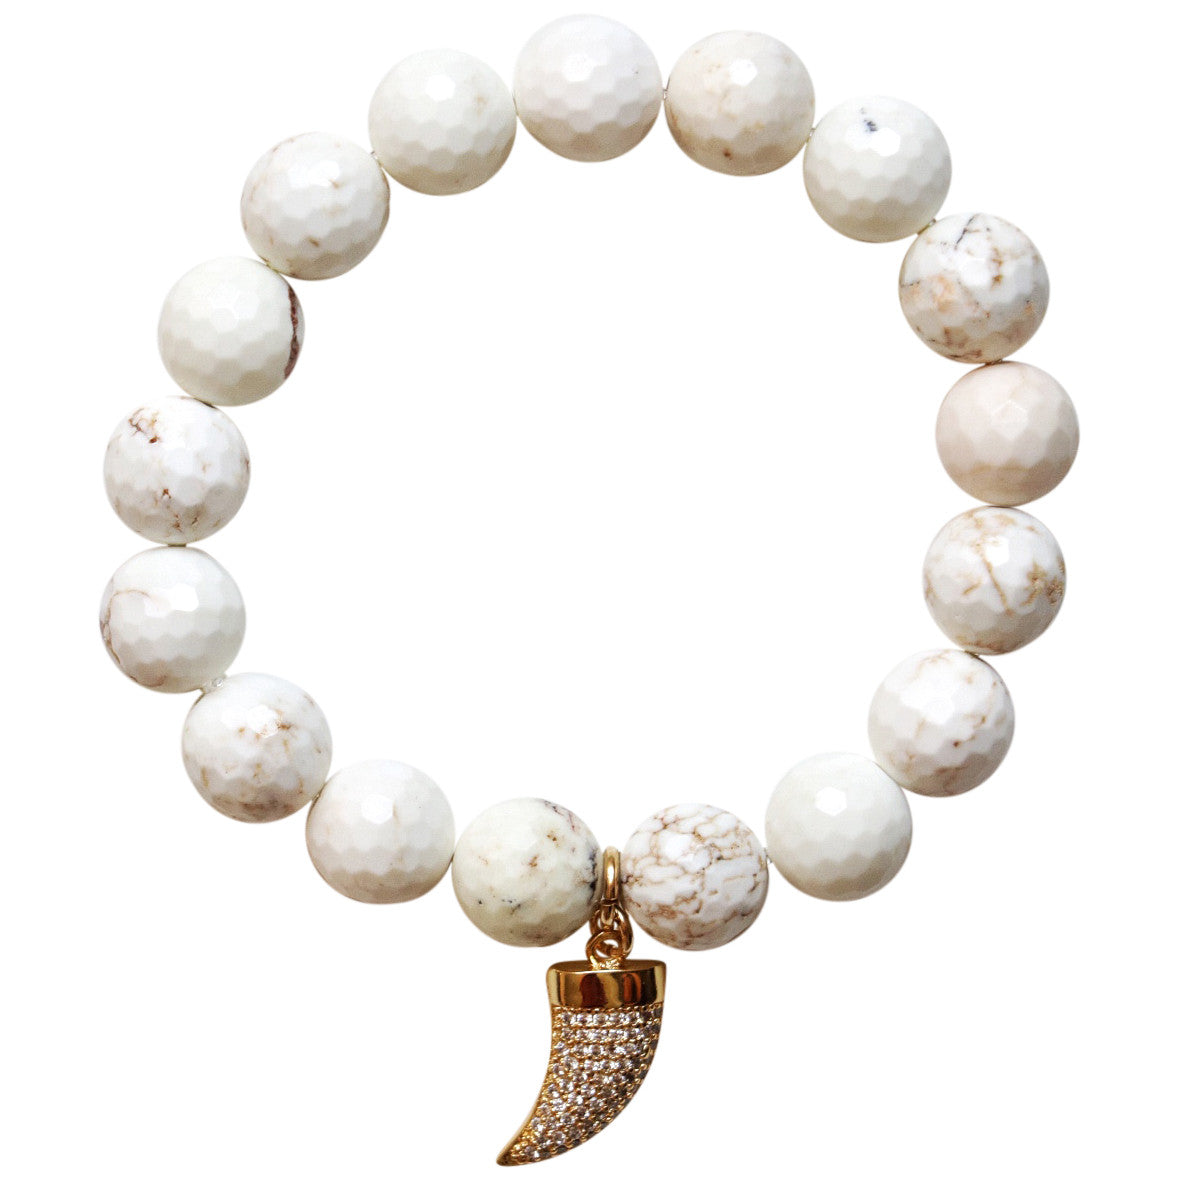 Molly Jane Designs Speckled White Quartz Charm Bracelet